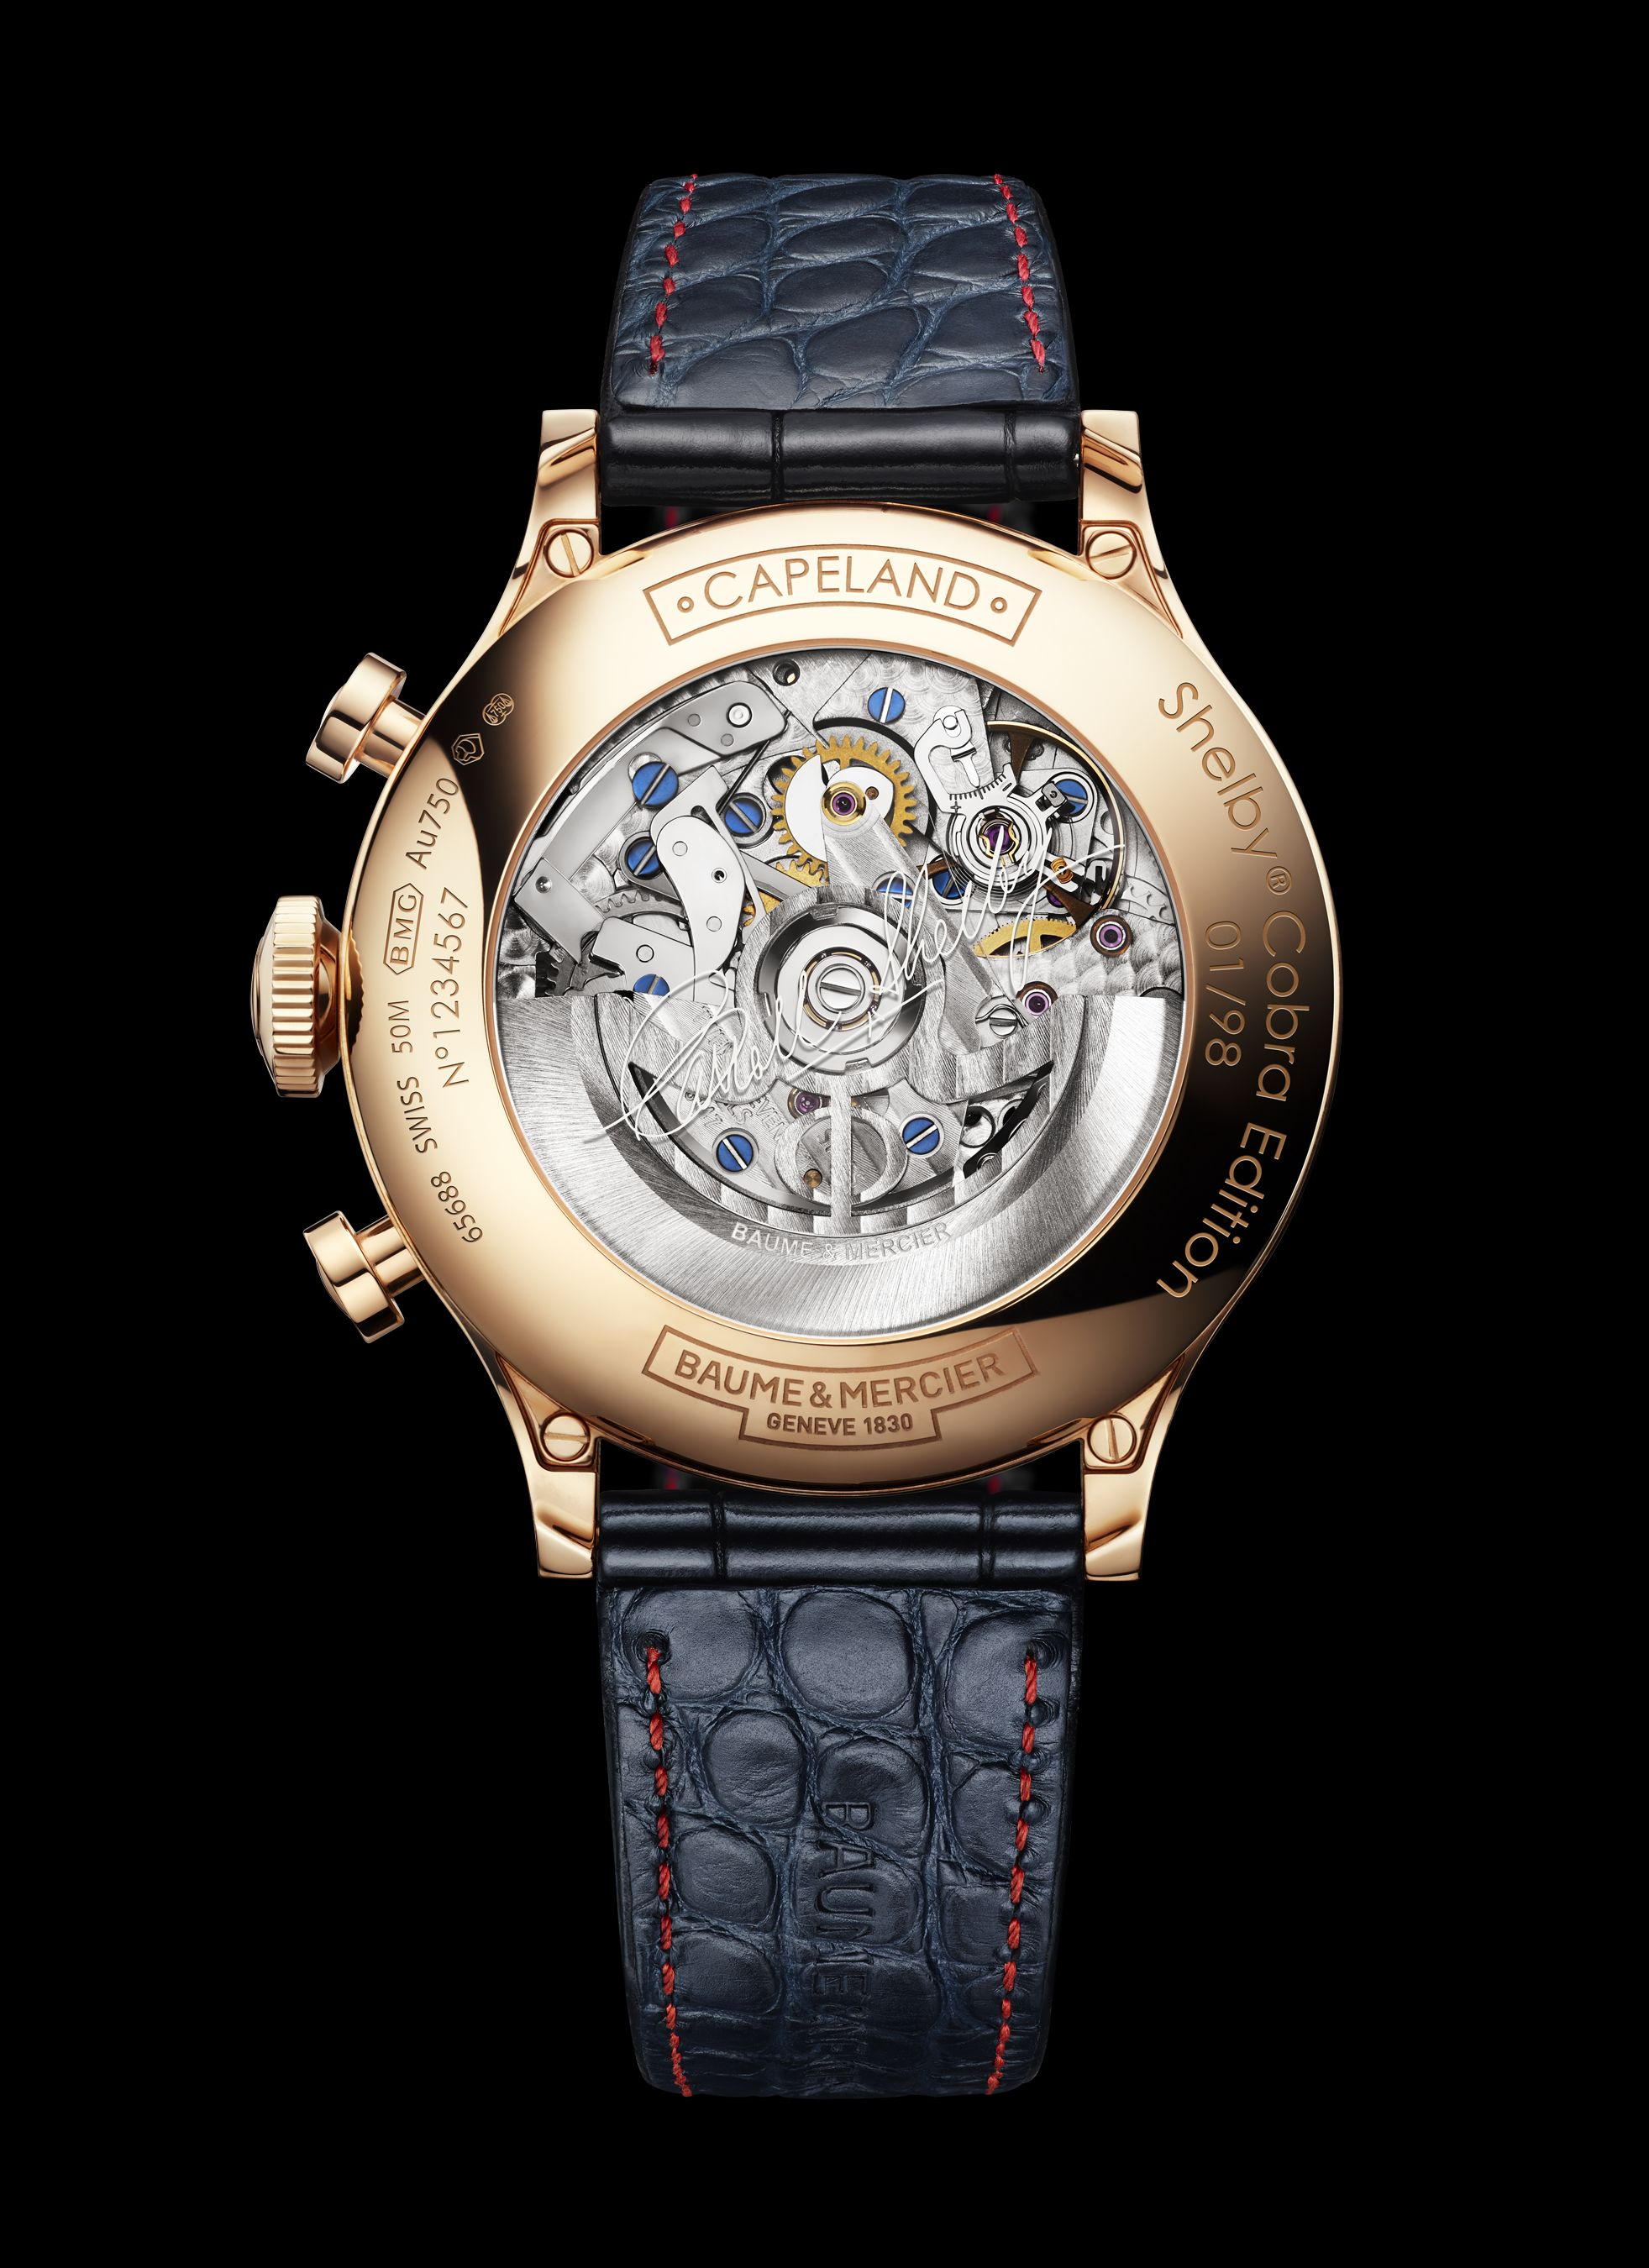 10233 Capeland Cobra Limited Edition 18K red gold, 44 mm